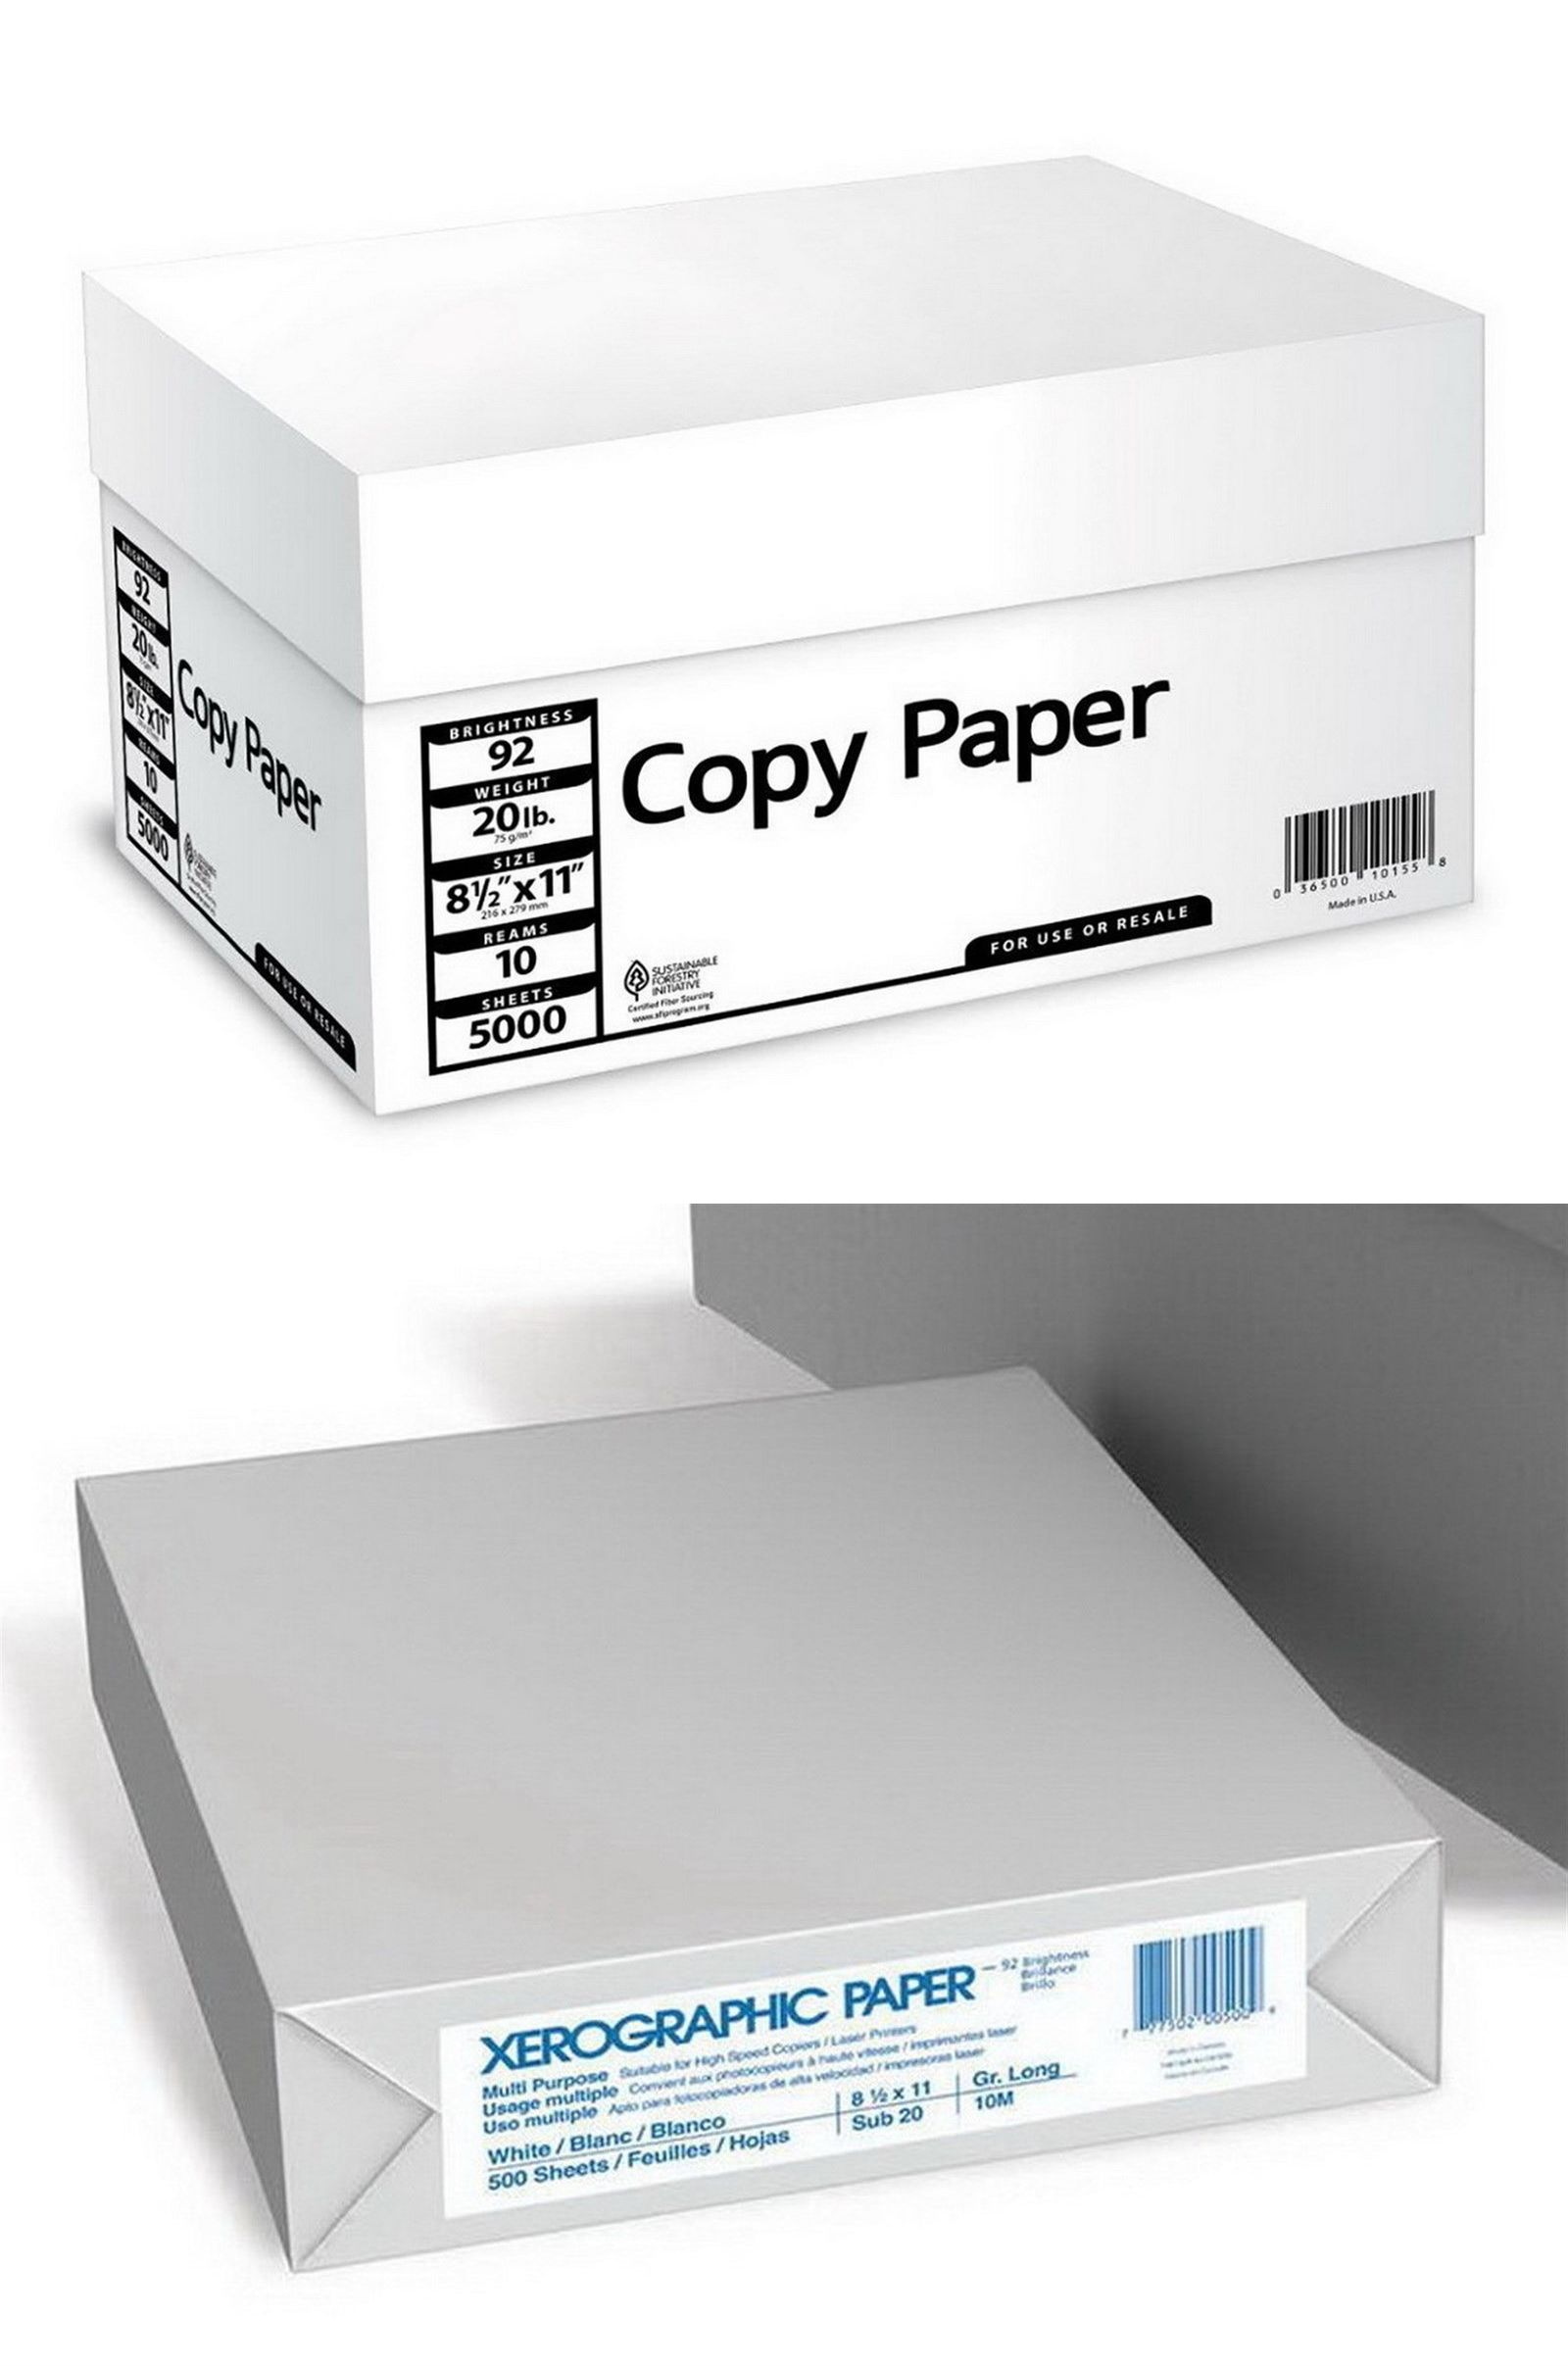 Printer Paper 86728 5 000 Sheets Copy Printer Paper 20 Lb 92 Bright 8 1 2 X 11 10 Ream Case 5000 Buy It Now Only 41 96 On Eb Printer Paper Printer Paper